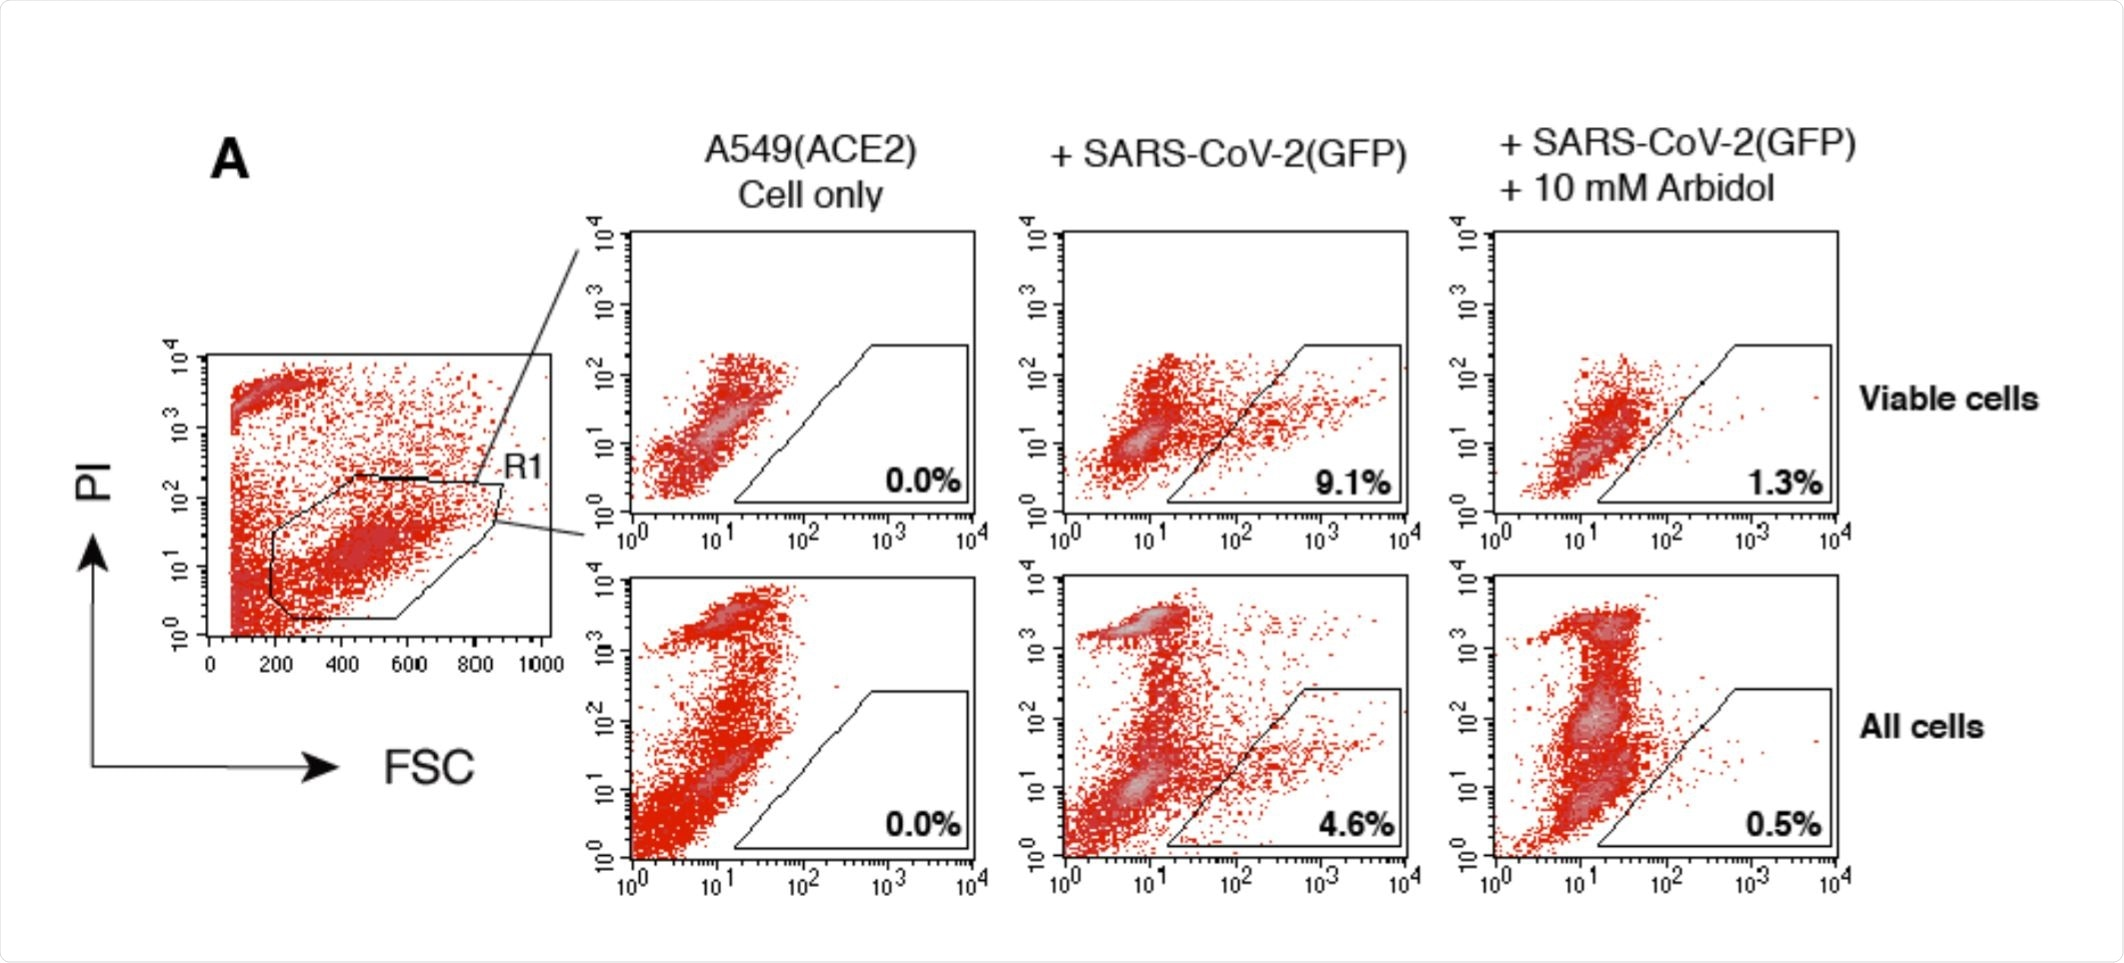 Validation of SARS-CoV-2 S protein pseudotyped reporter viruses for the screening and quantification of antiviral drugs and neutralization antibodies.